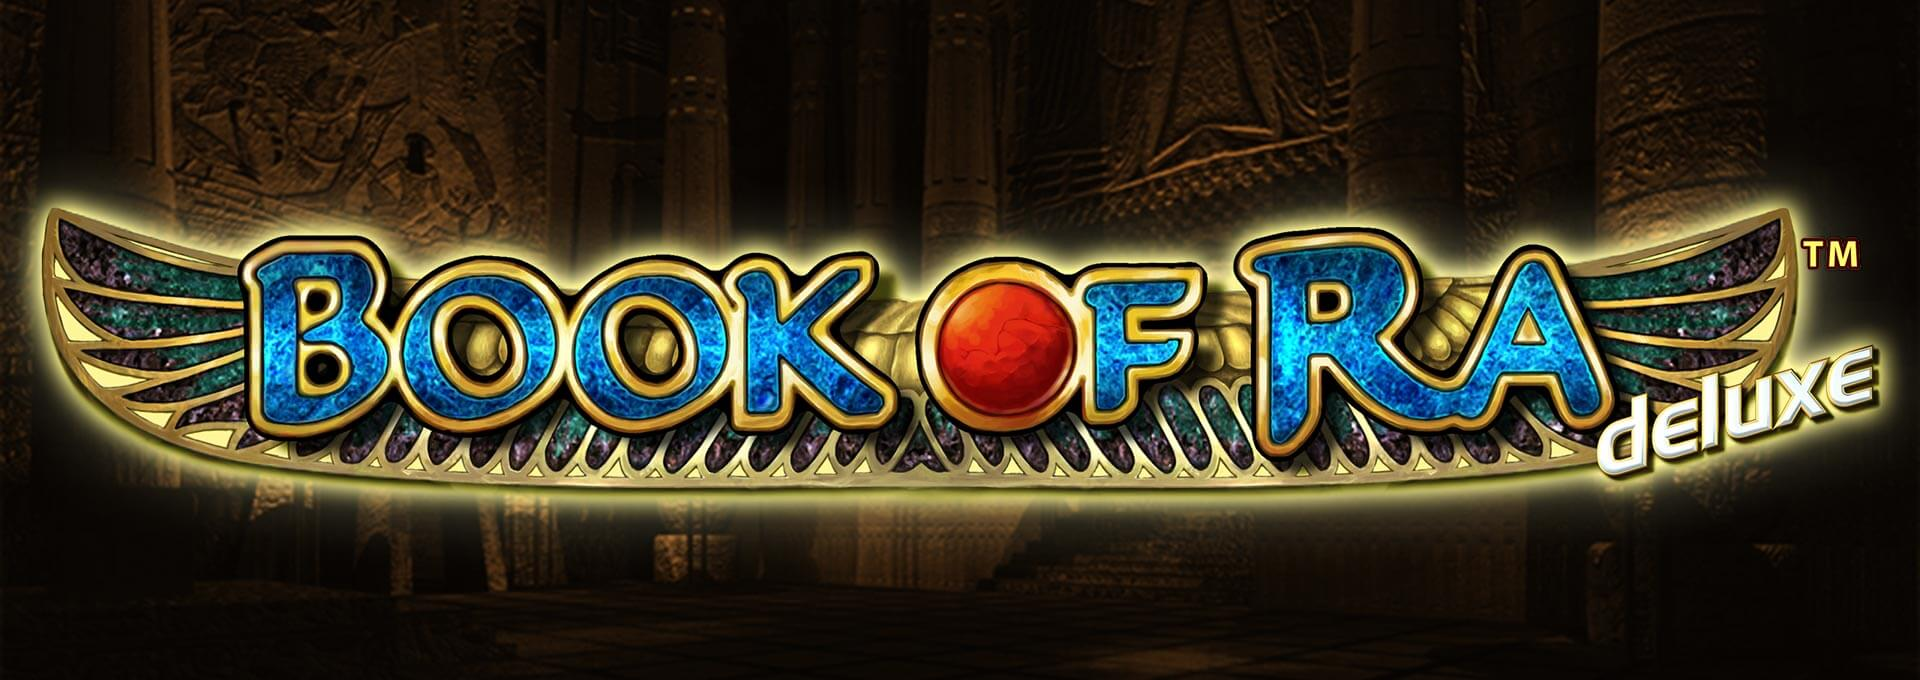 slots online gambling free casino games book of ra